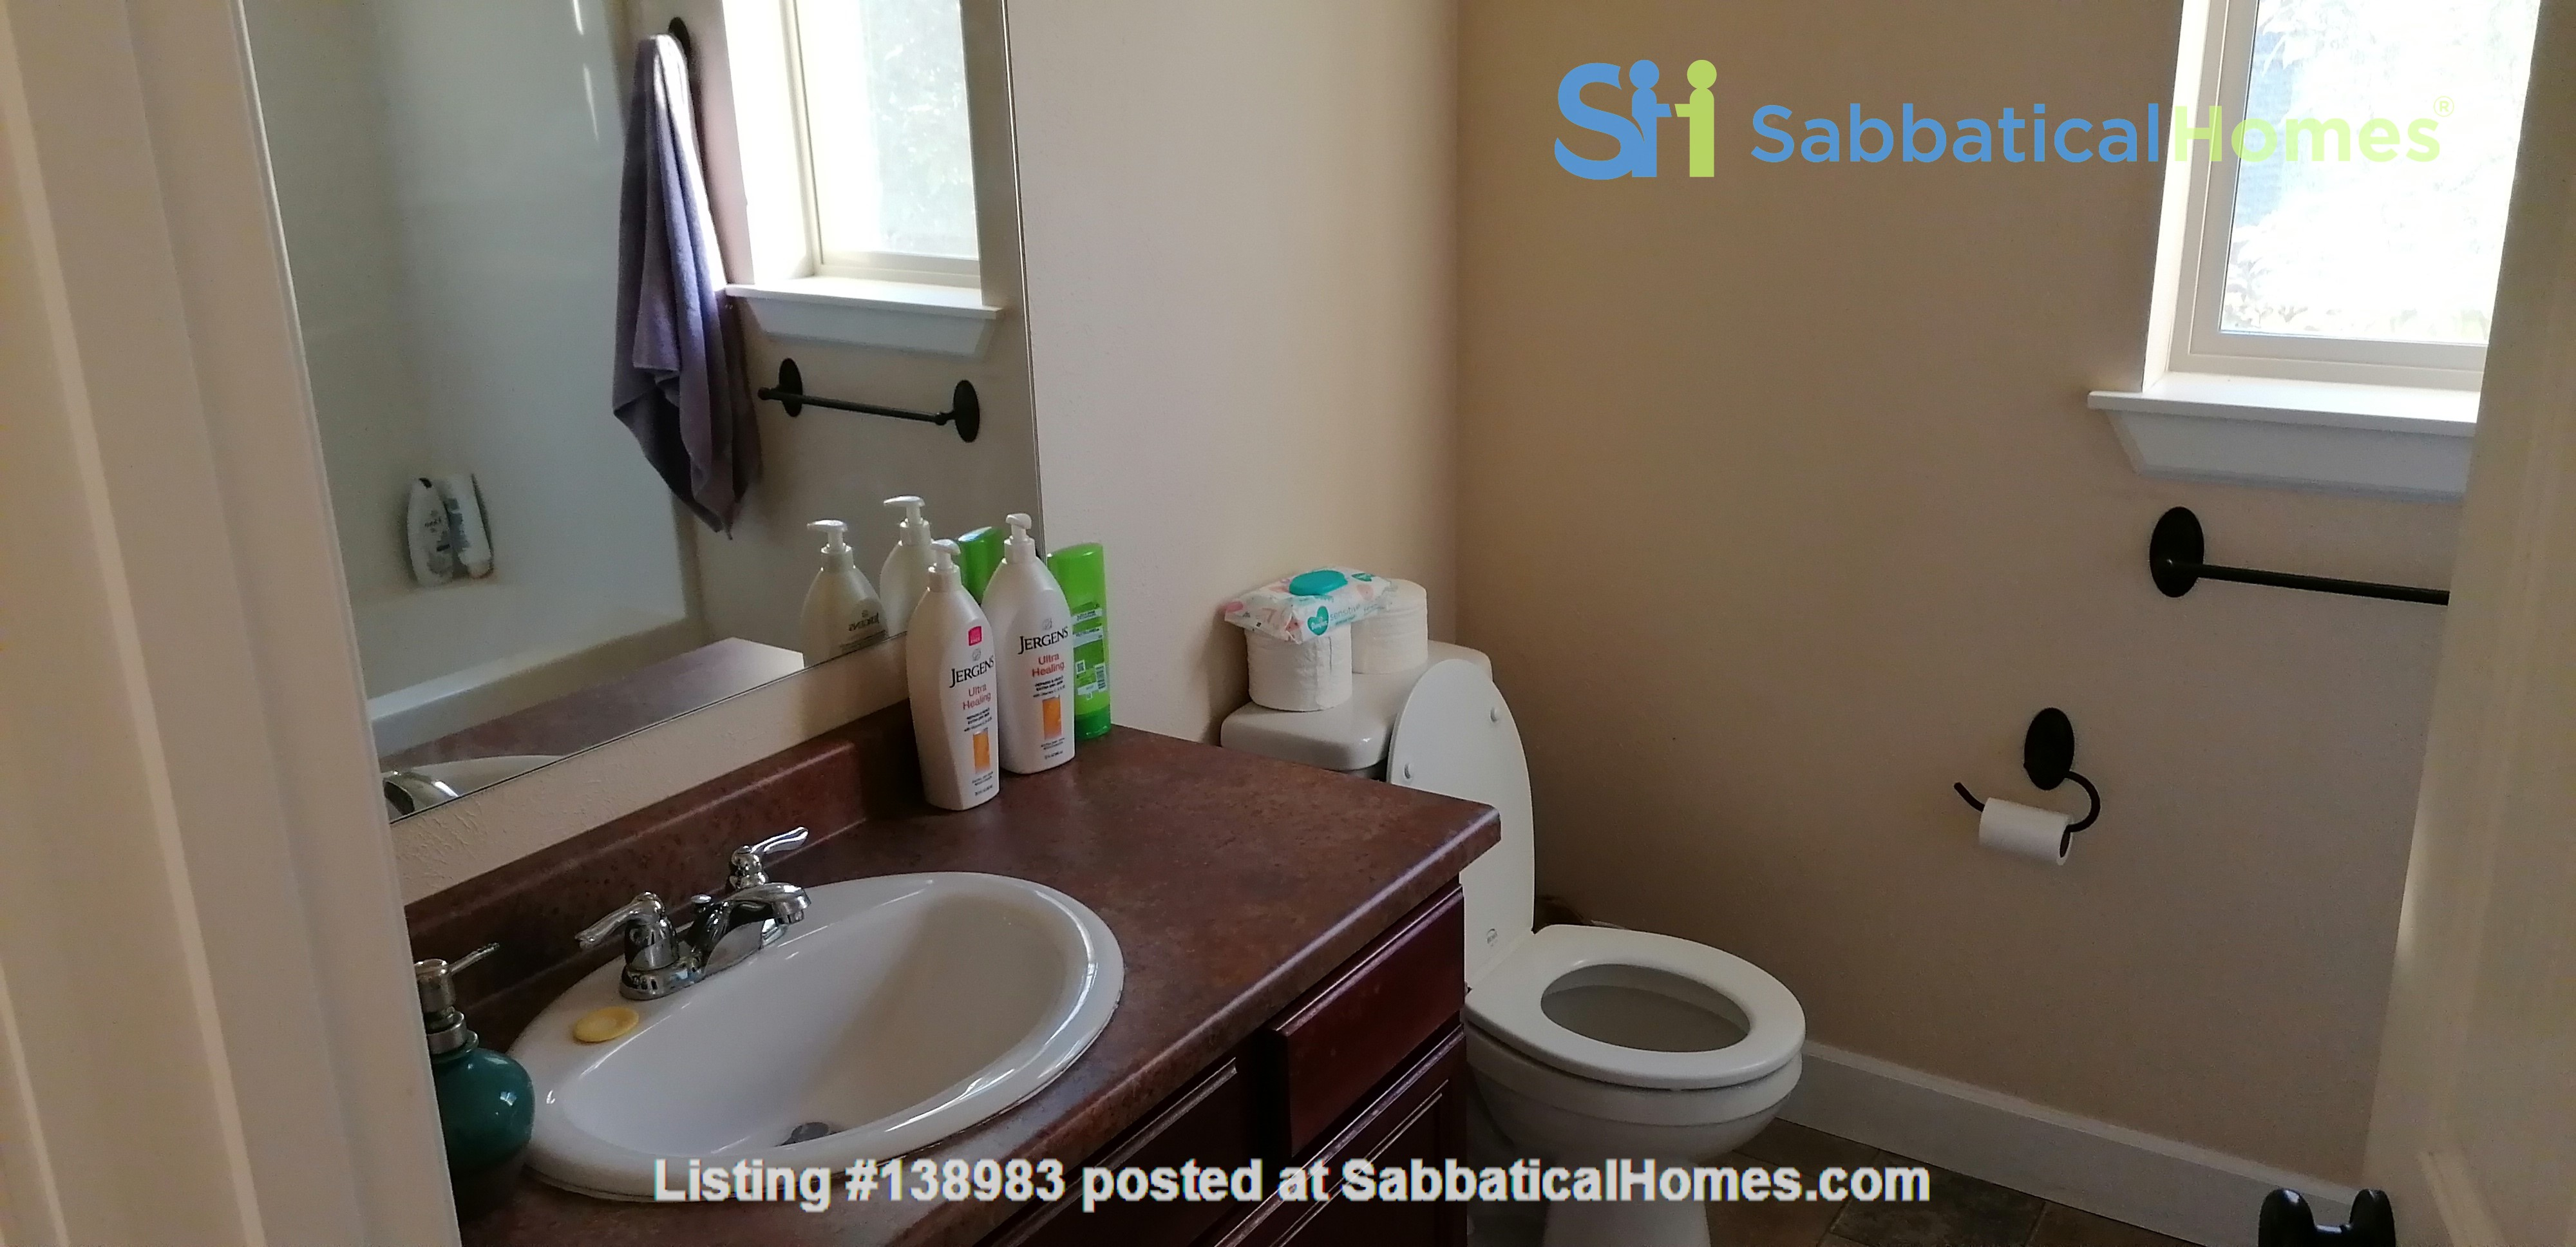 Spacious one bedroom/studio  apartment in Missoula, MT Home Rental in Missoula, Montana, United States 7